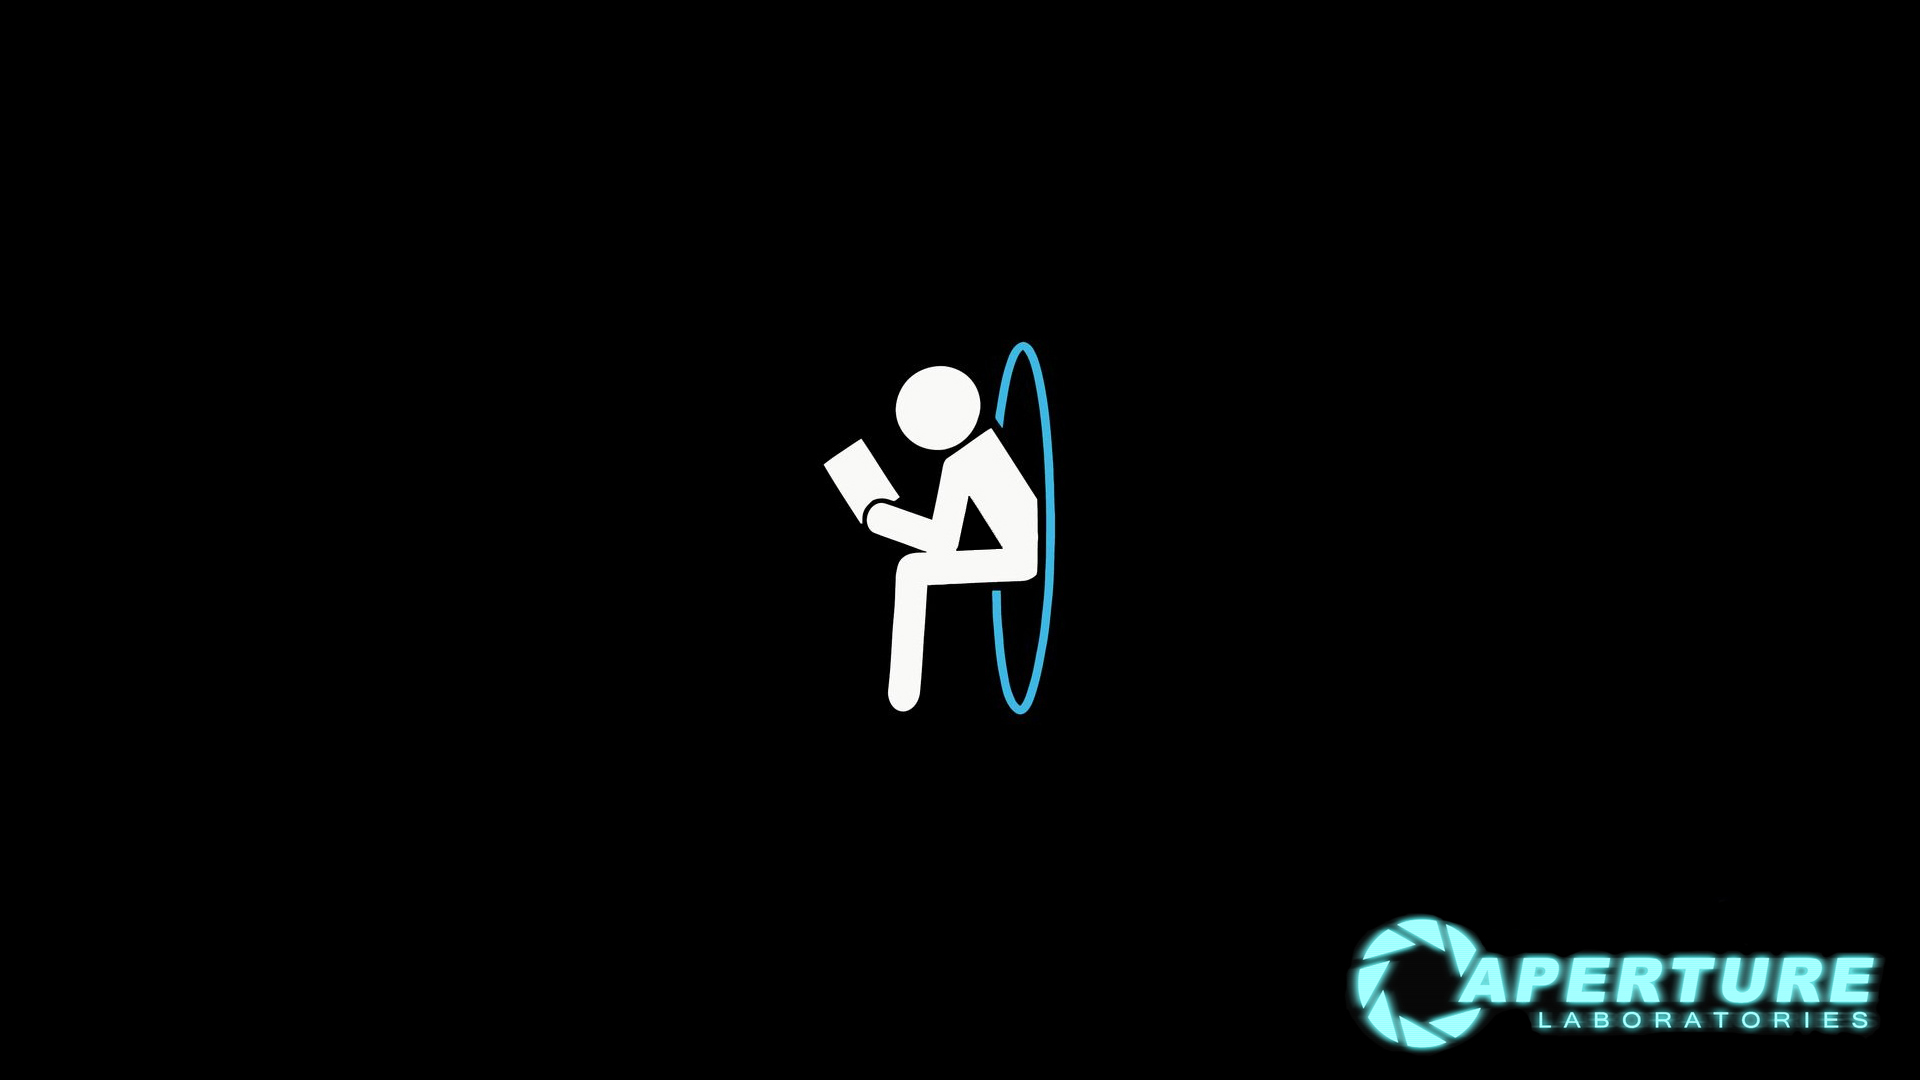 Hd Wallpapers Fa Word: Portal 2 Wallpapers, Pictures, Images